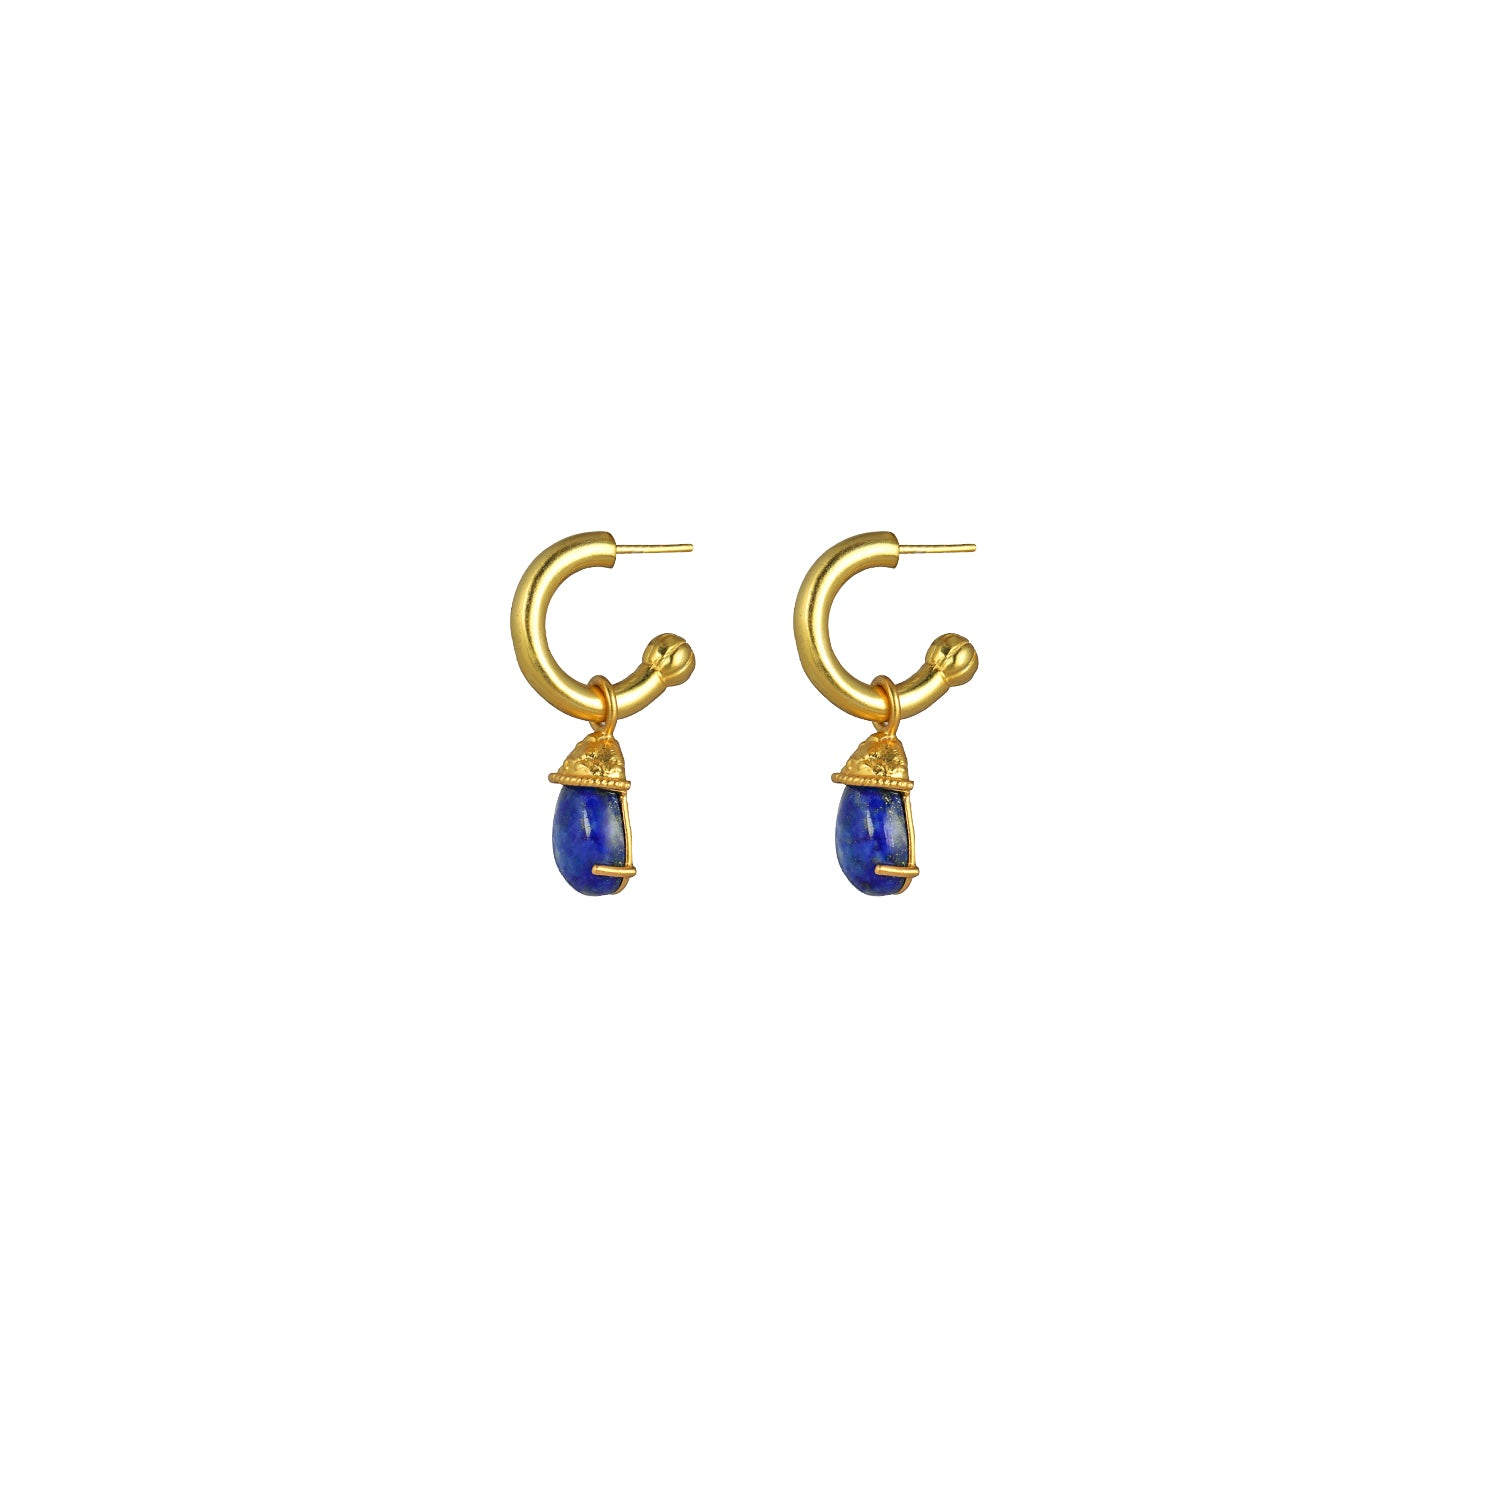 Jewel Earrings Lapis (2 in 1 with removable charm)